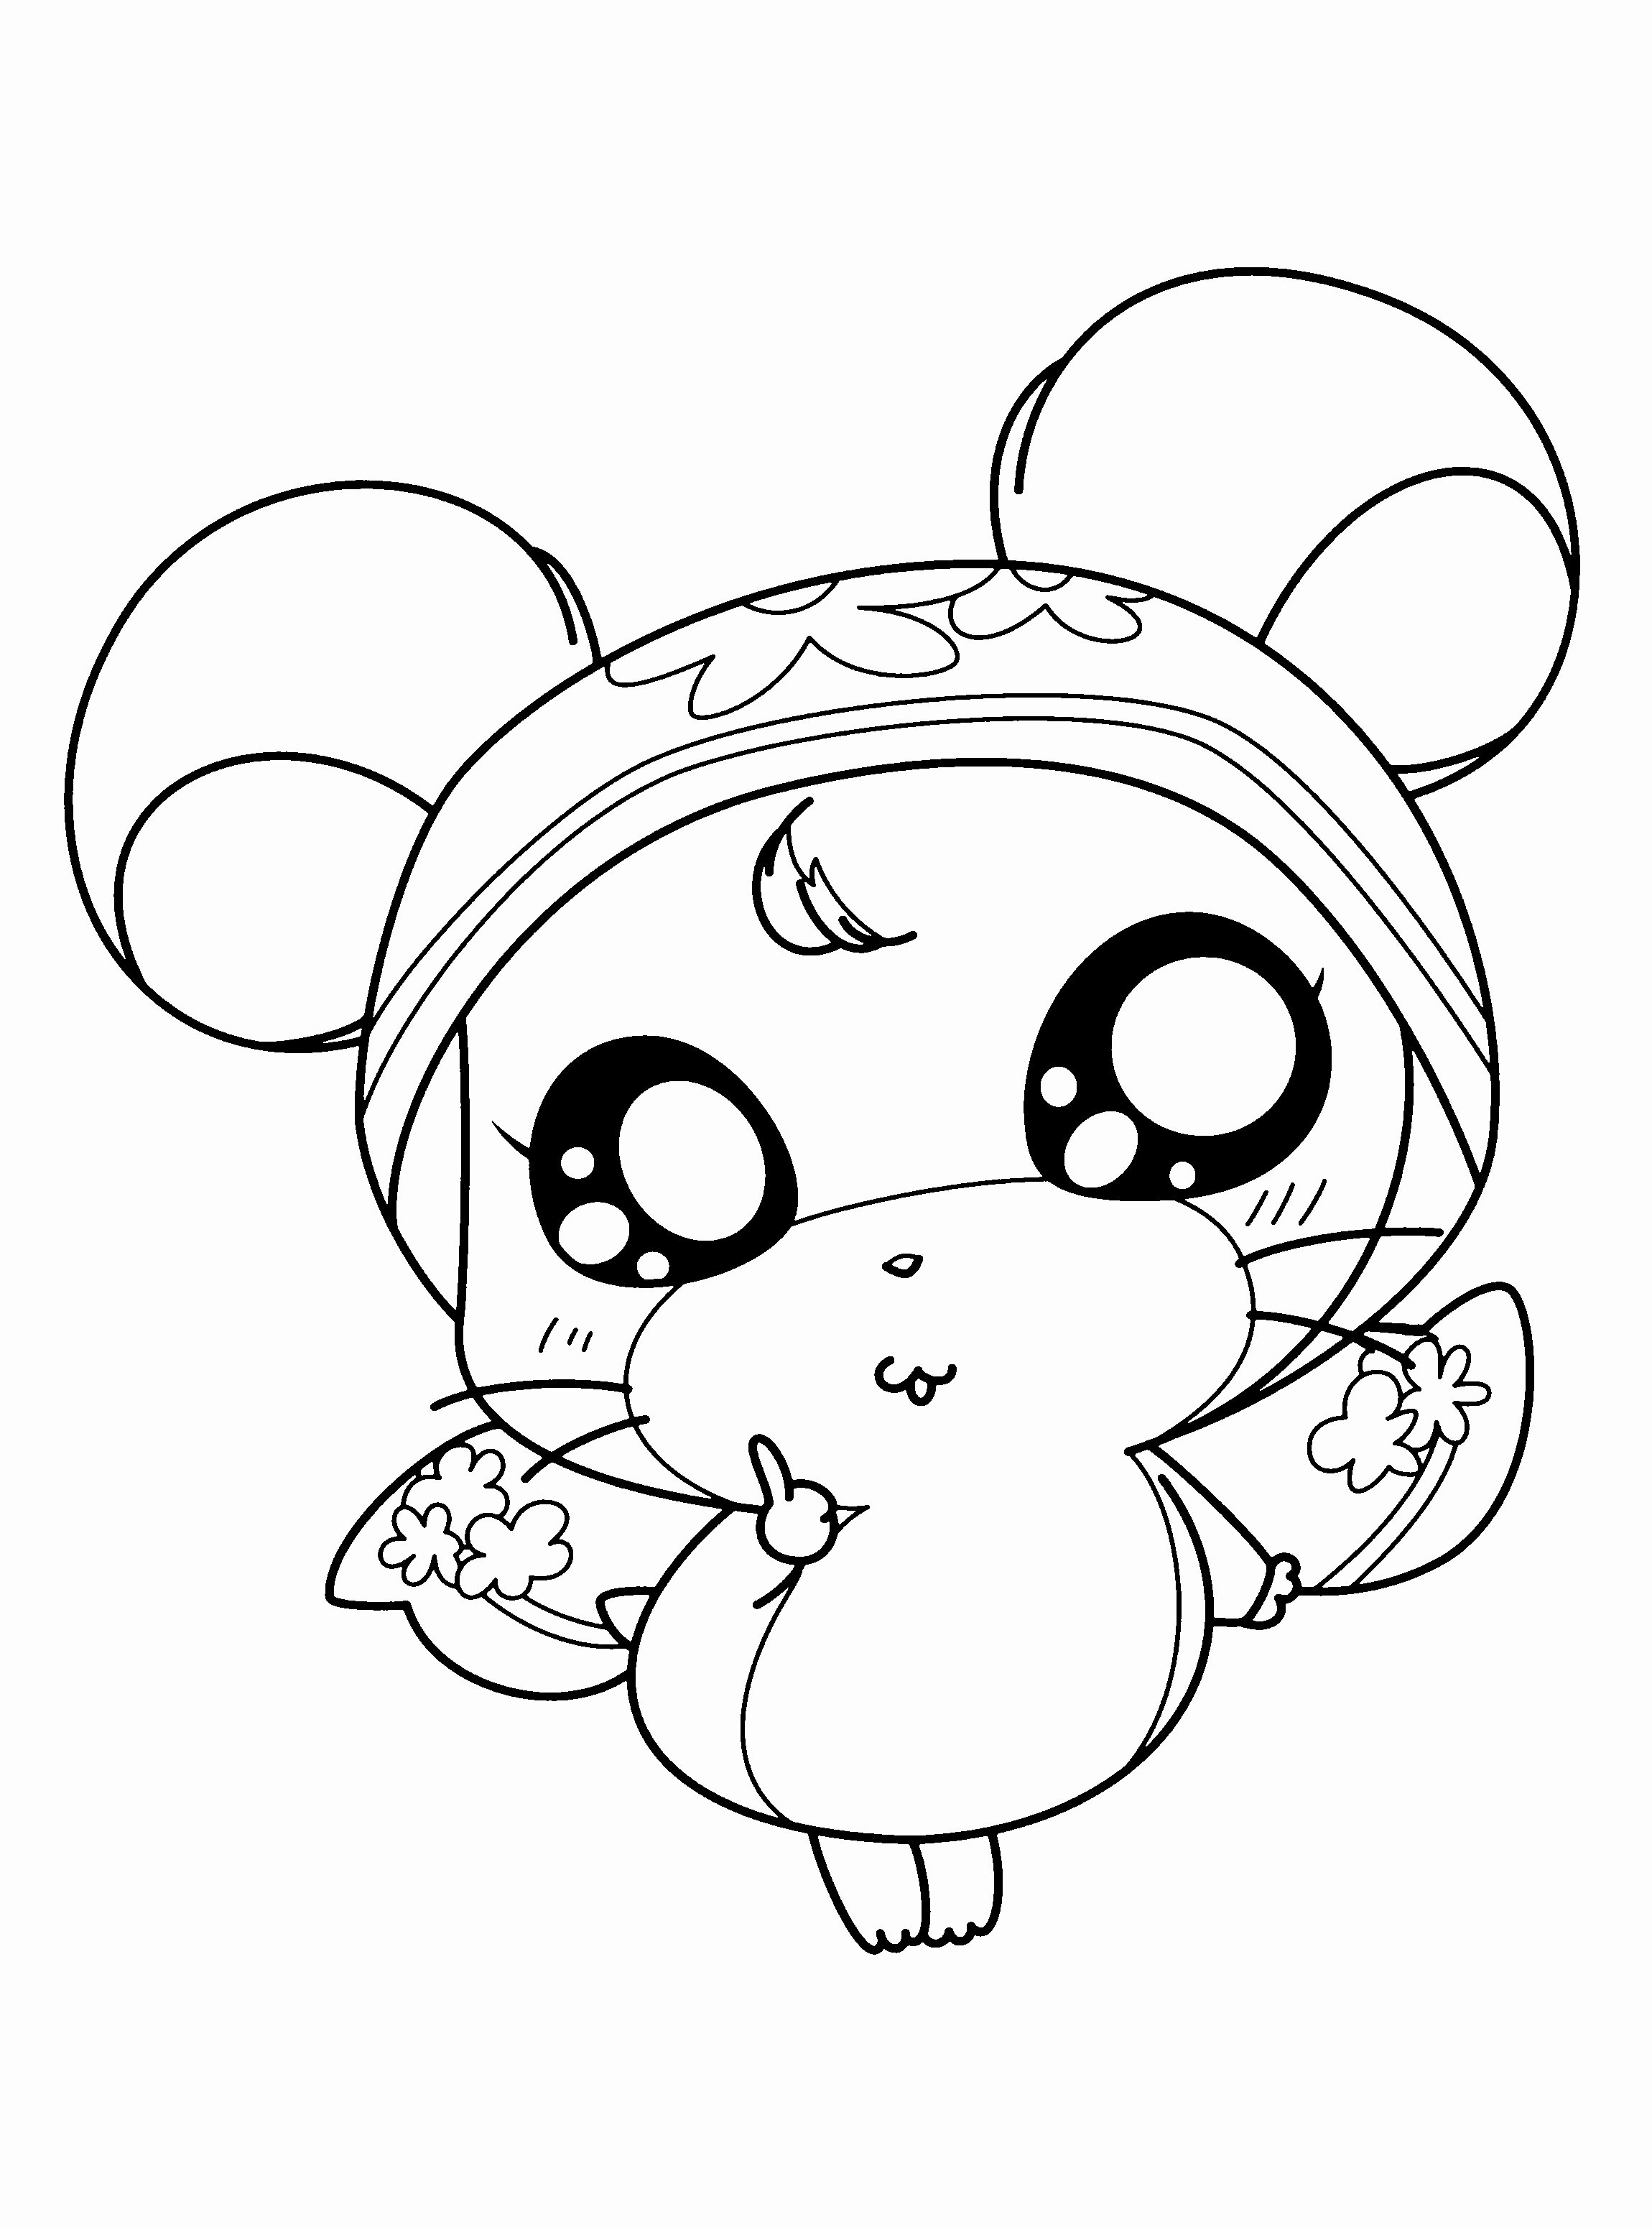 coloring pages to print for girls Collection-Coloring Pages Bookmarks Elegant Coloring Pages for Girls Lovely Printable Cds 0d – Fun Time 16-b